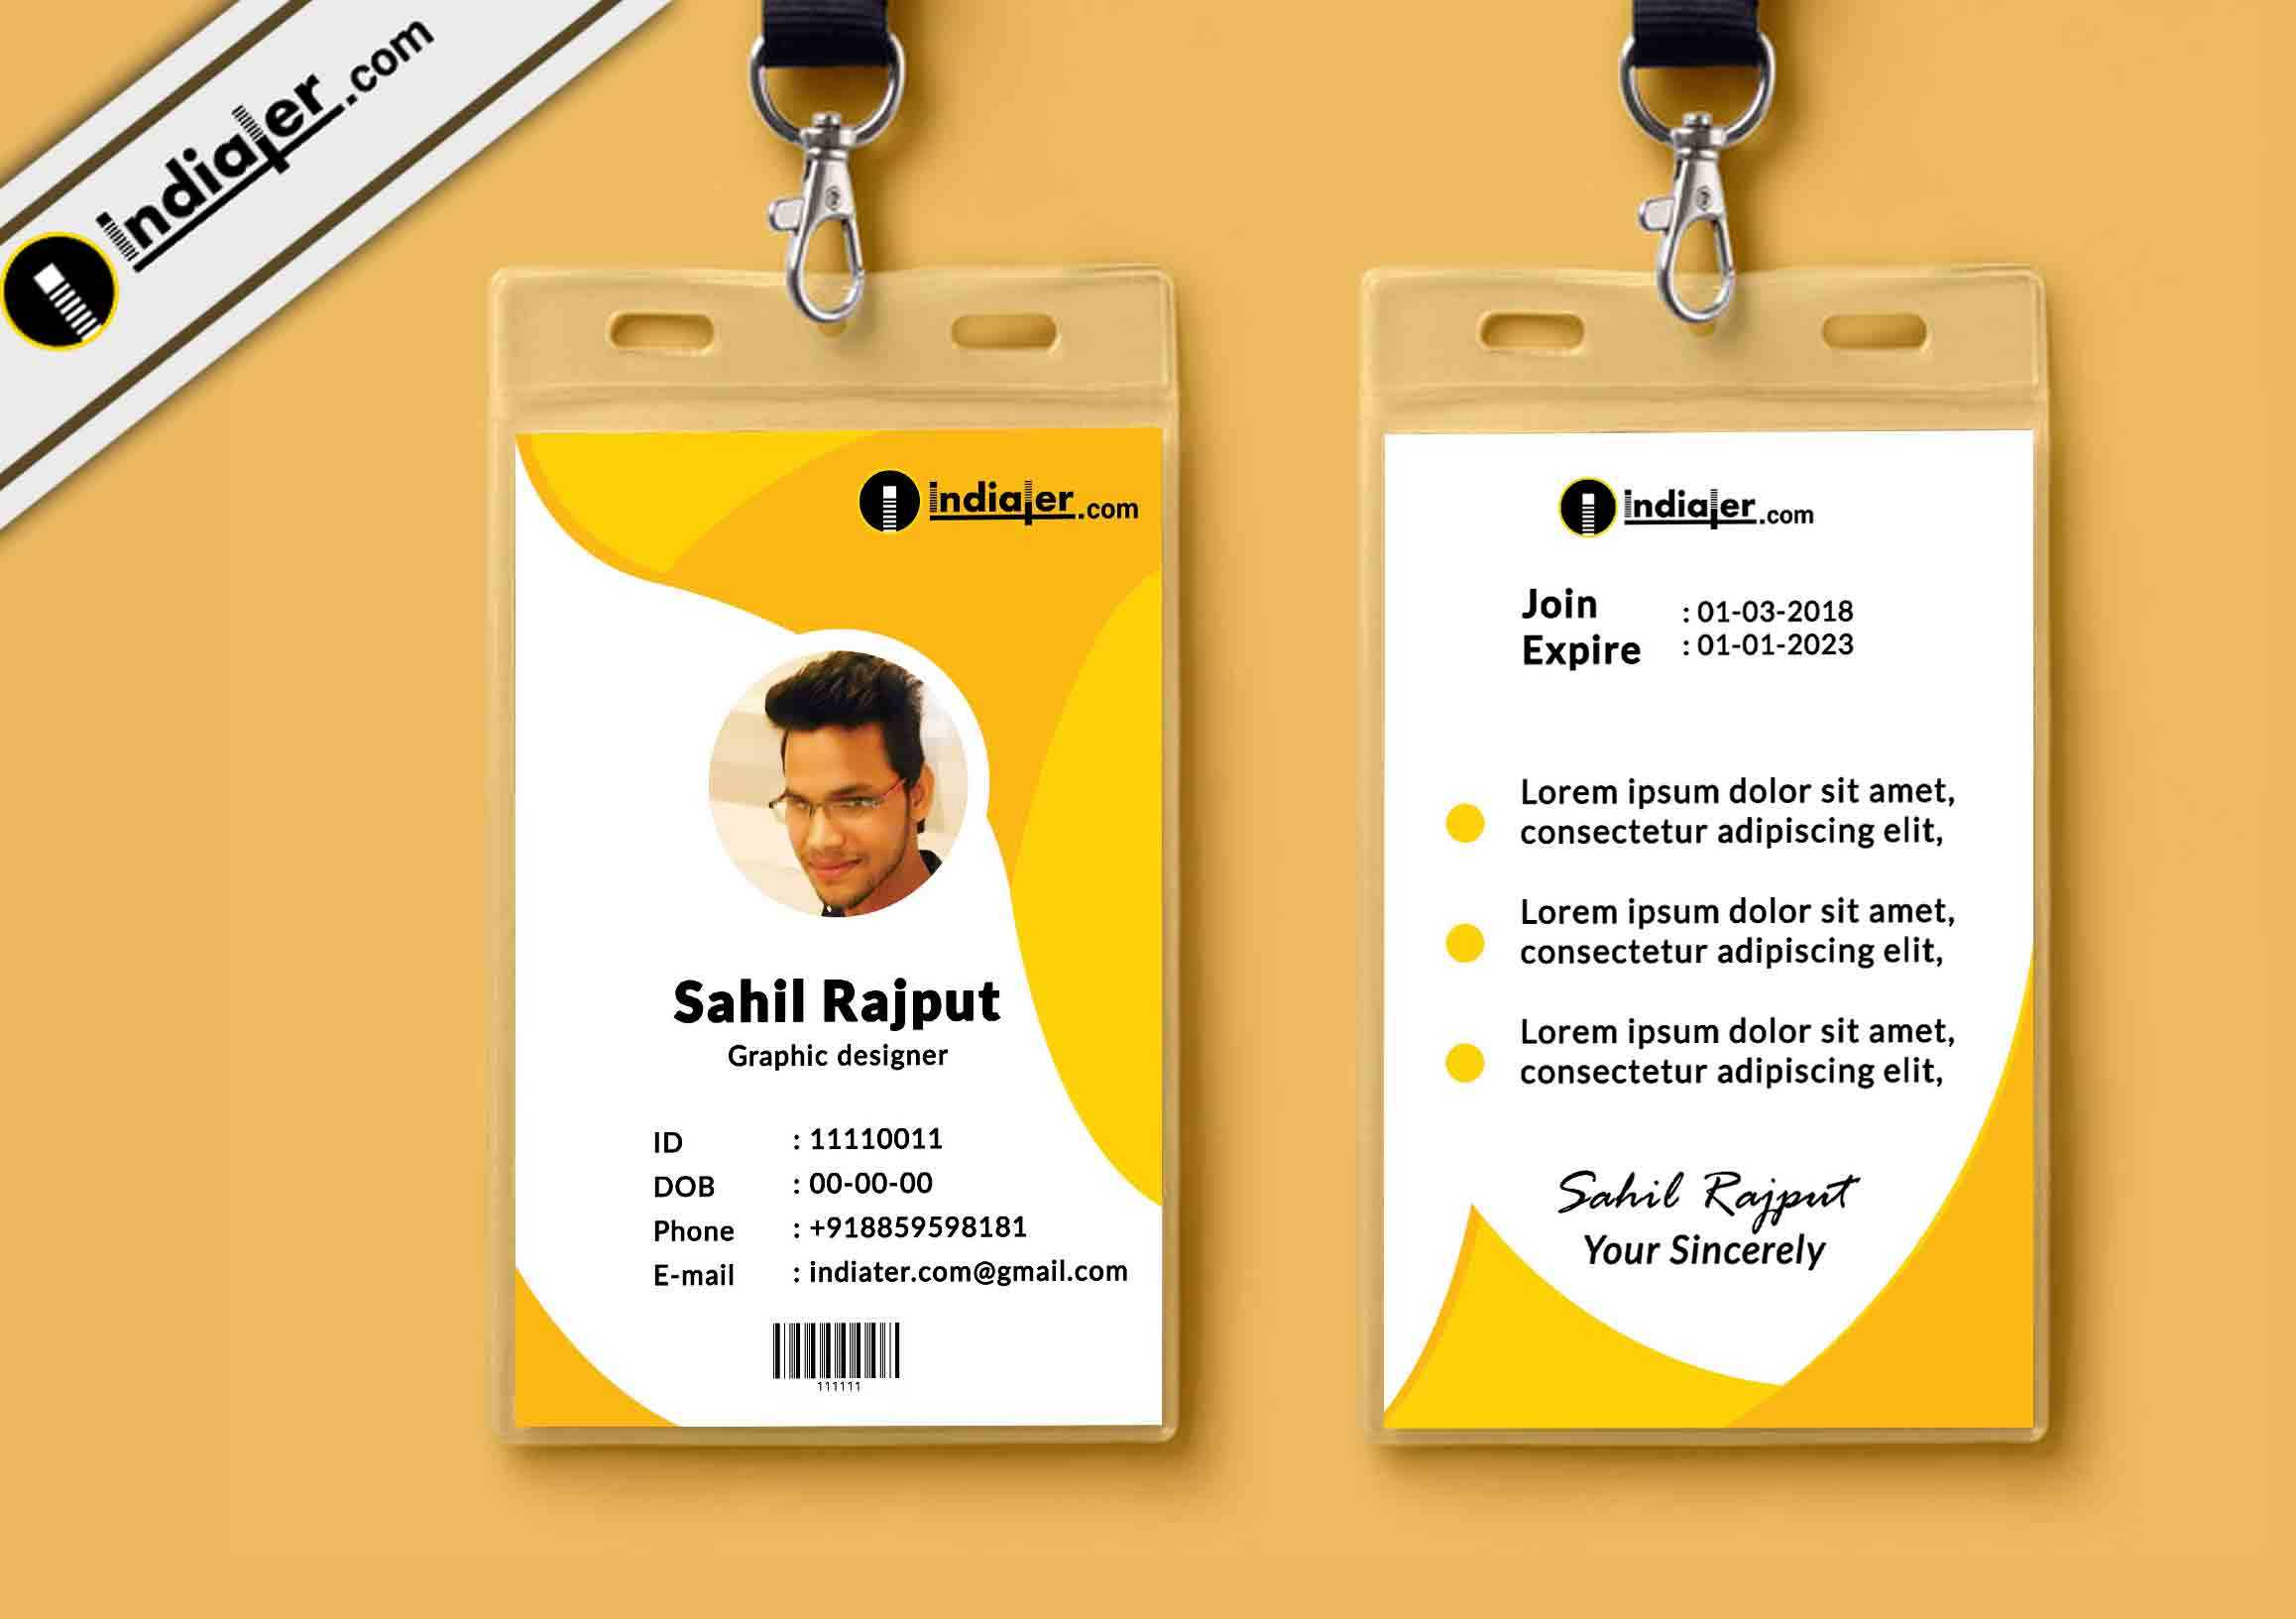 002 Id Card Design Psd Format Template Ideas Multipurpose Within Company Id Card Design Template